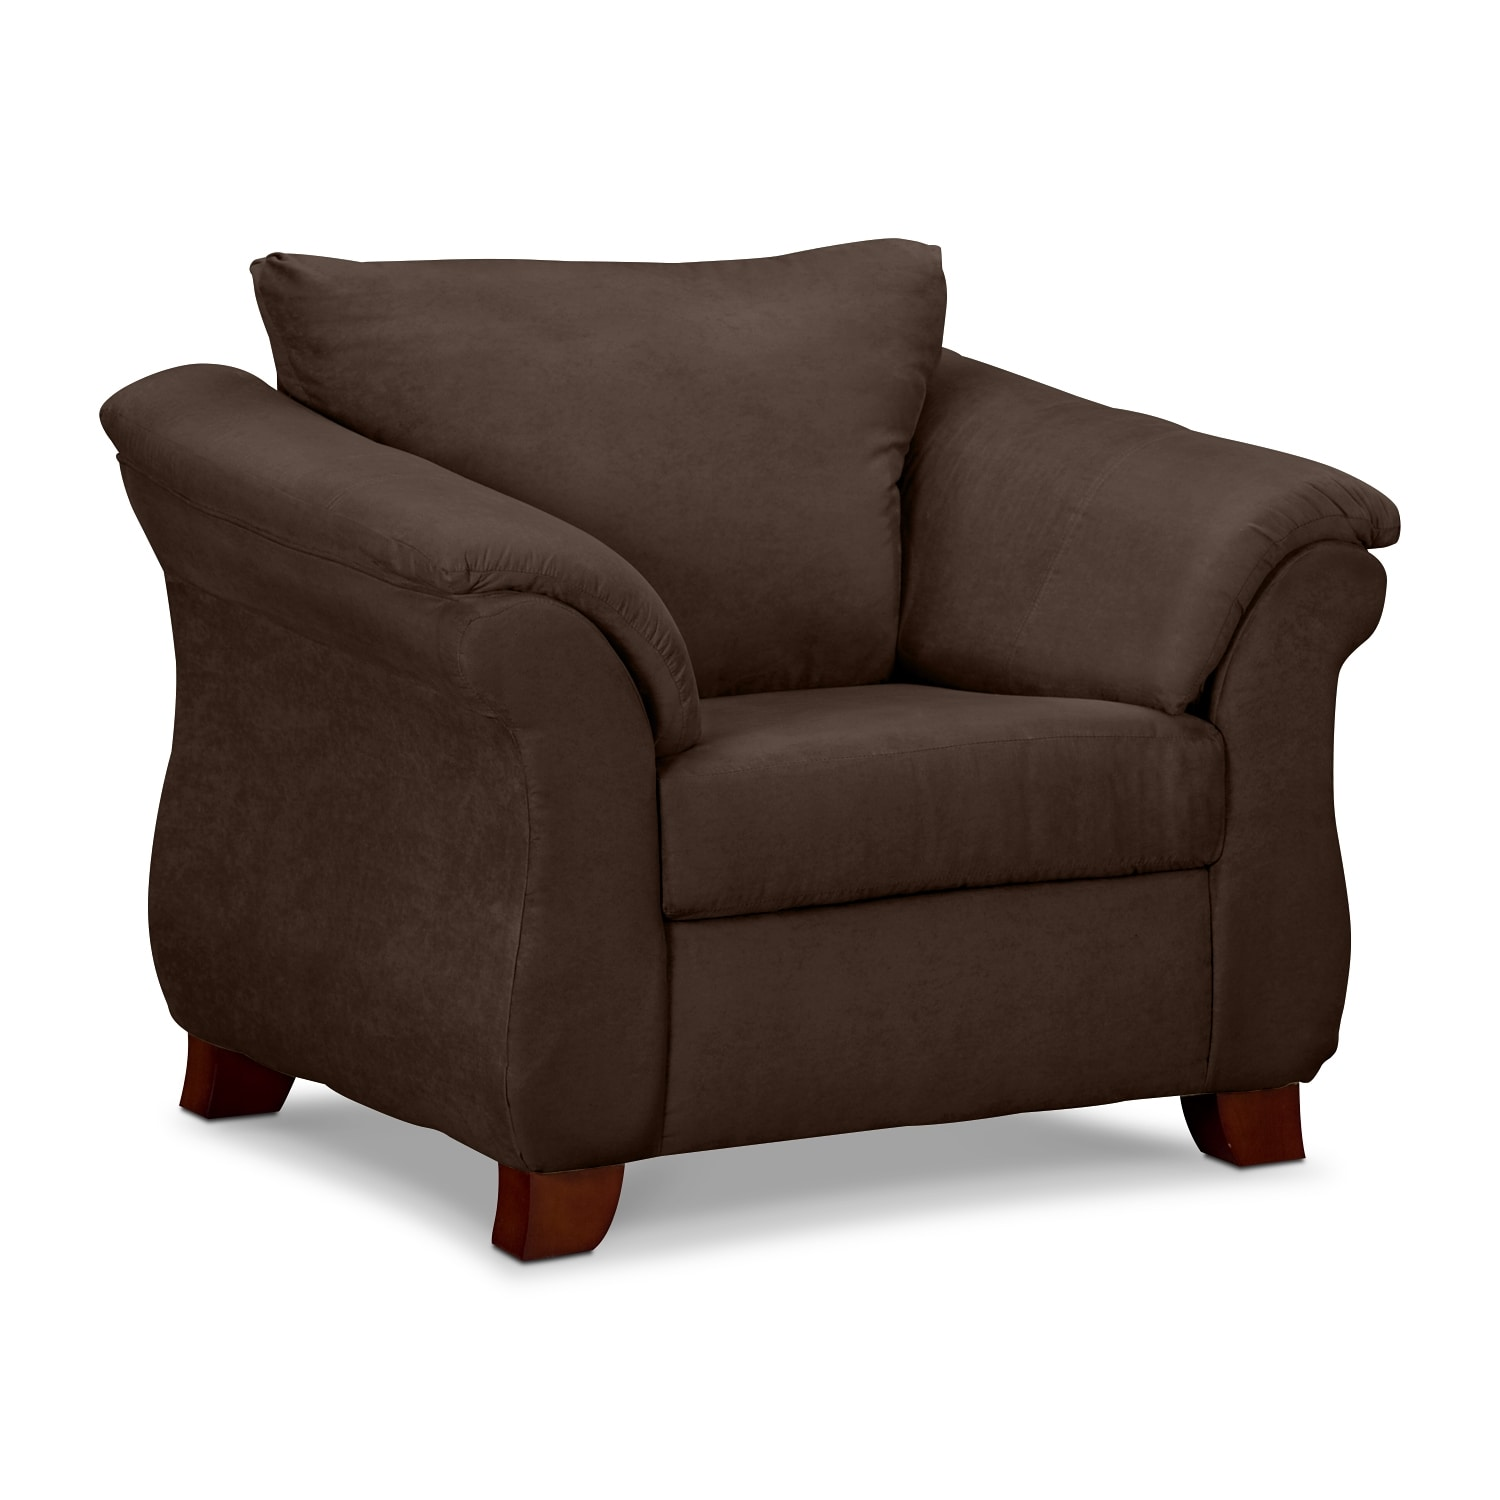 American Signature Furniture Clearance Store: Adrian Chocolate 2 Pc. Living Room W/ Chair